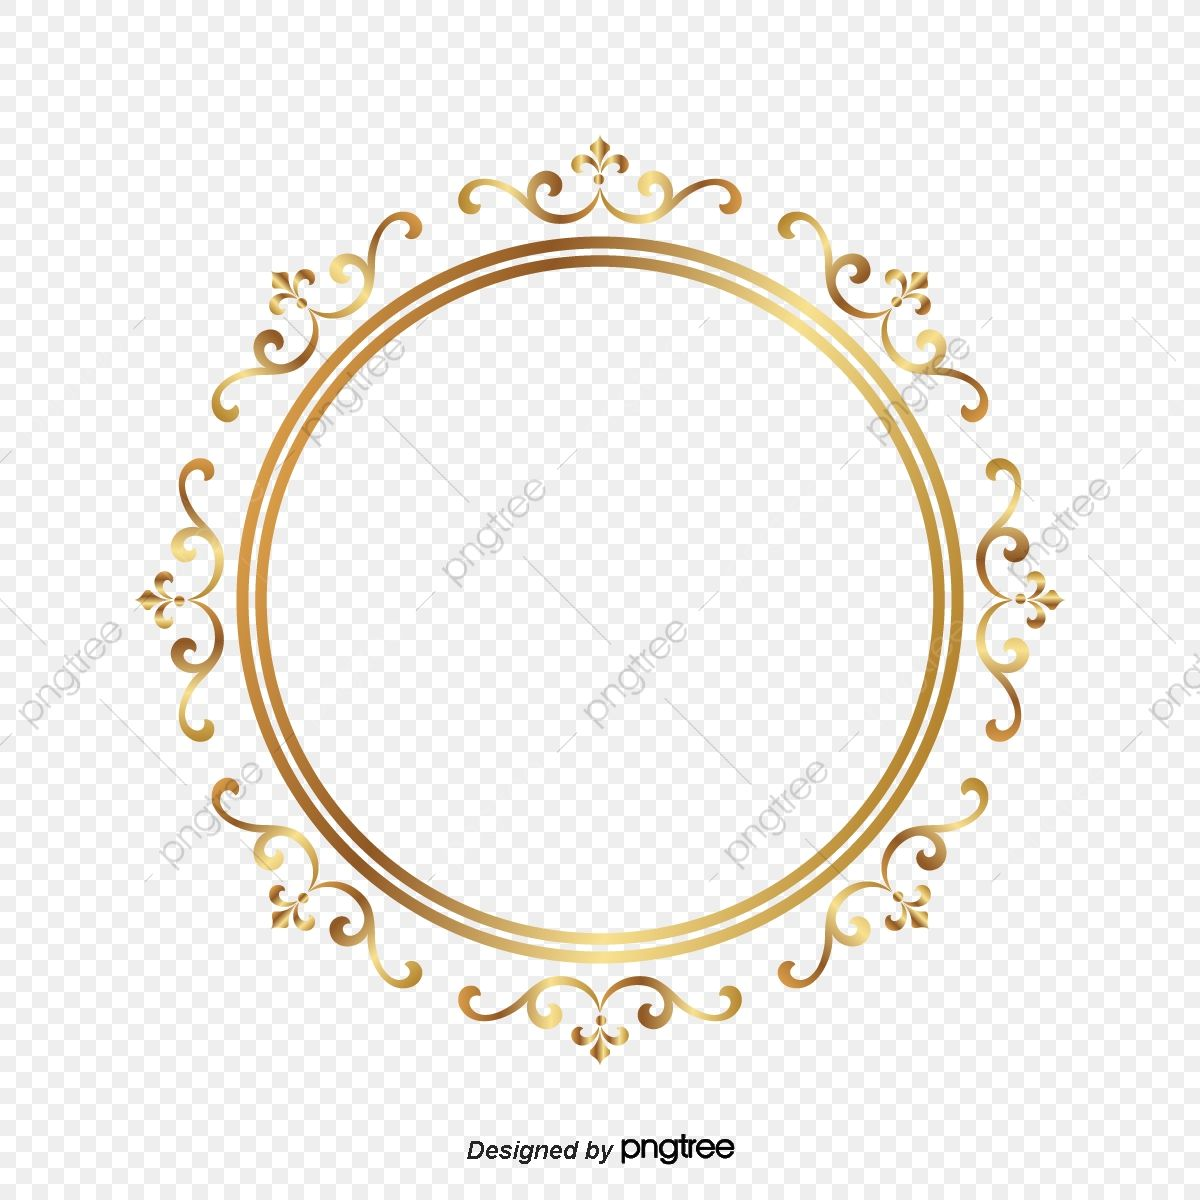 Frame Gold Circle Around A Circle The Circle Frame Around A Circle Gold Png And Vector With Transparent Background For Free Download Gold Circle Frames Circle Frames Gold Frame